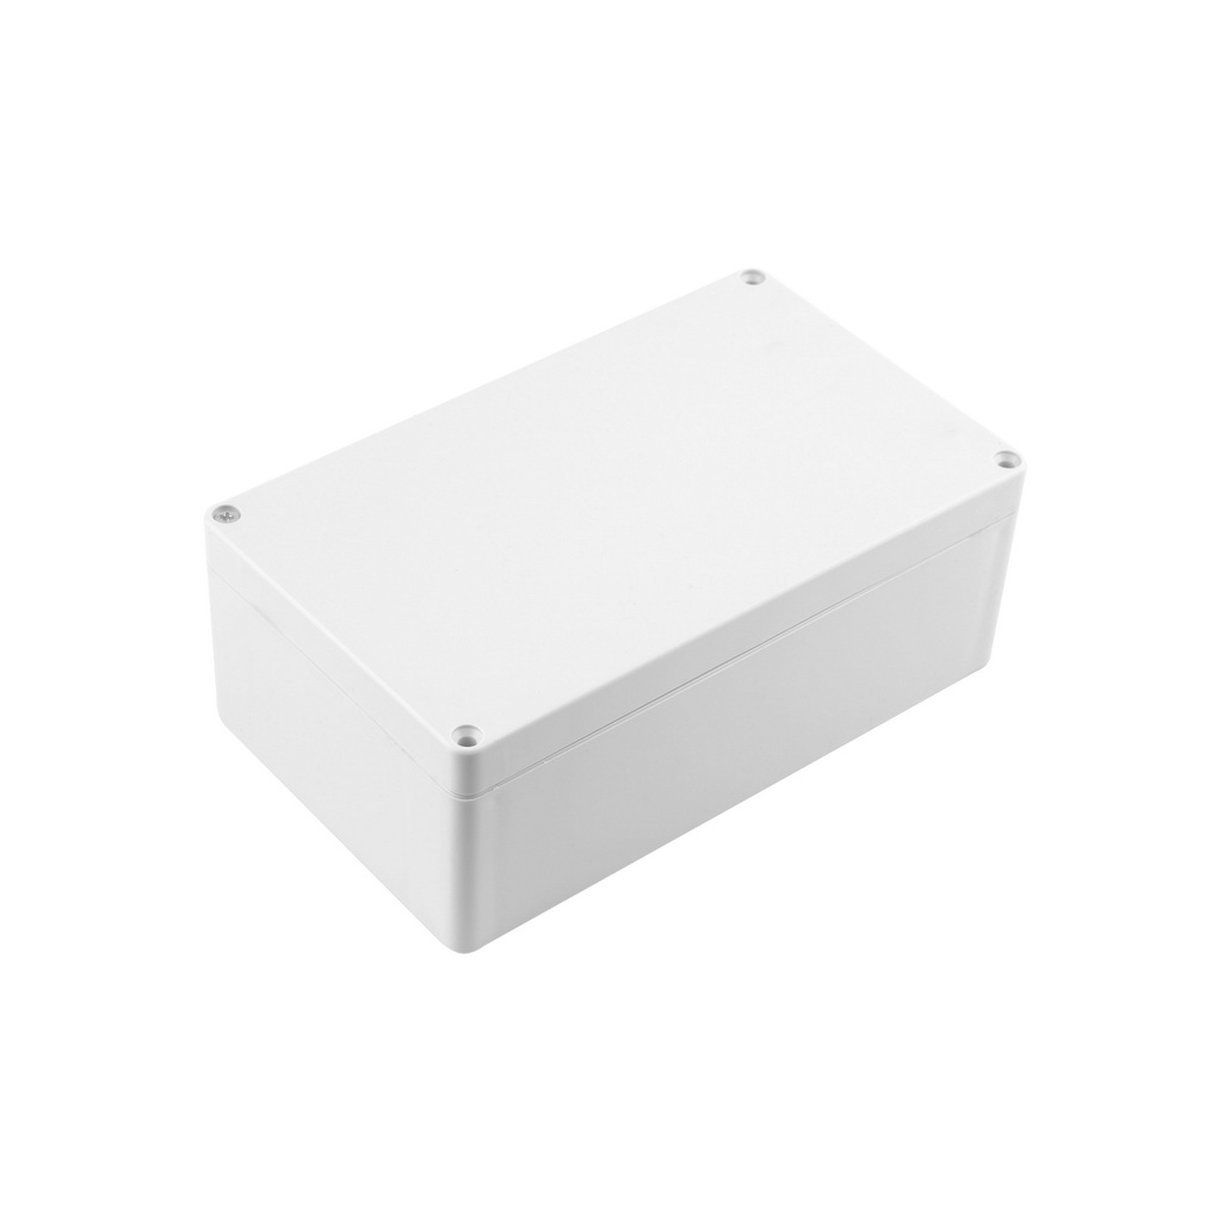 Ip66 Waterproof Plastic Enclosure Case Electronic Junction Project Box For Pcb With Transparent 200x120x75mm Excellent Quality In